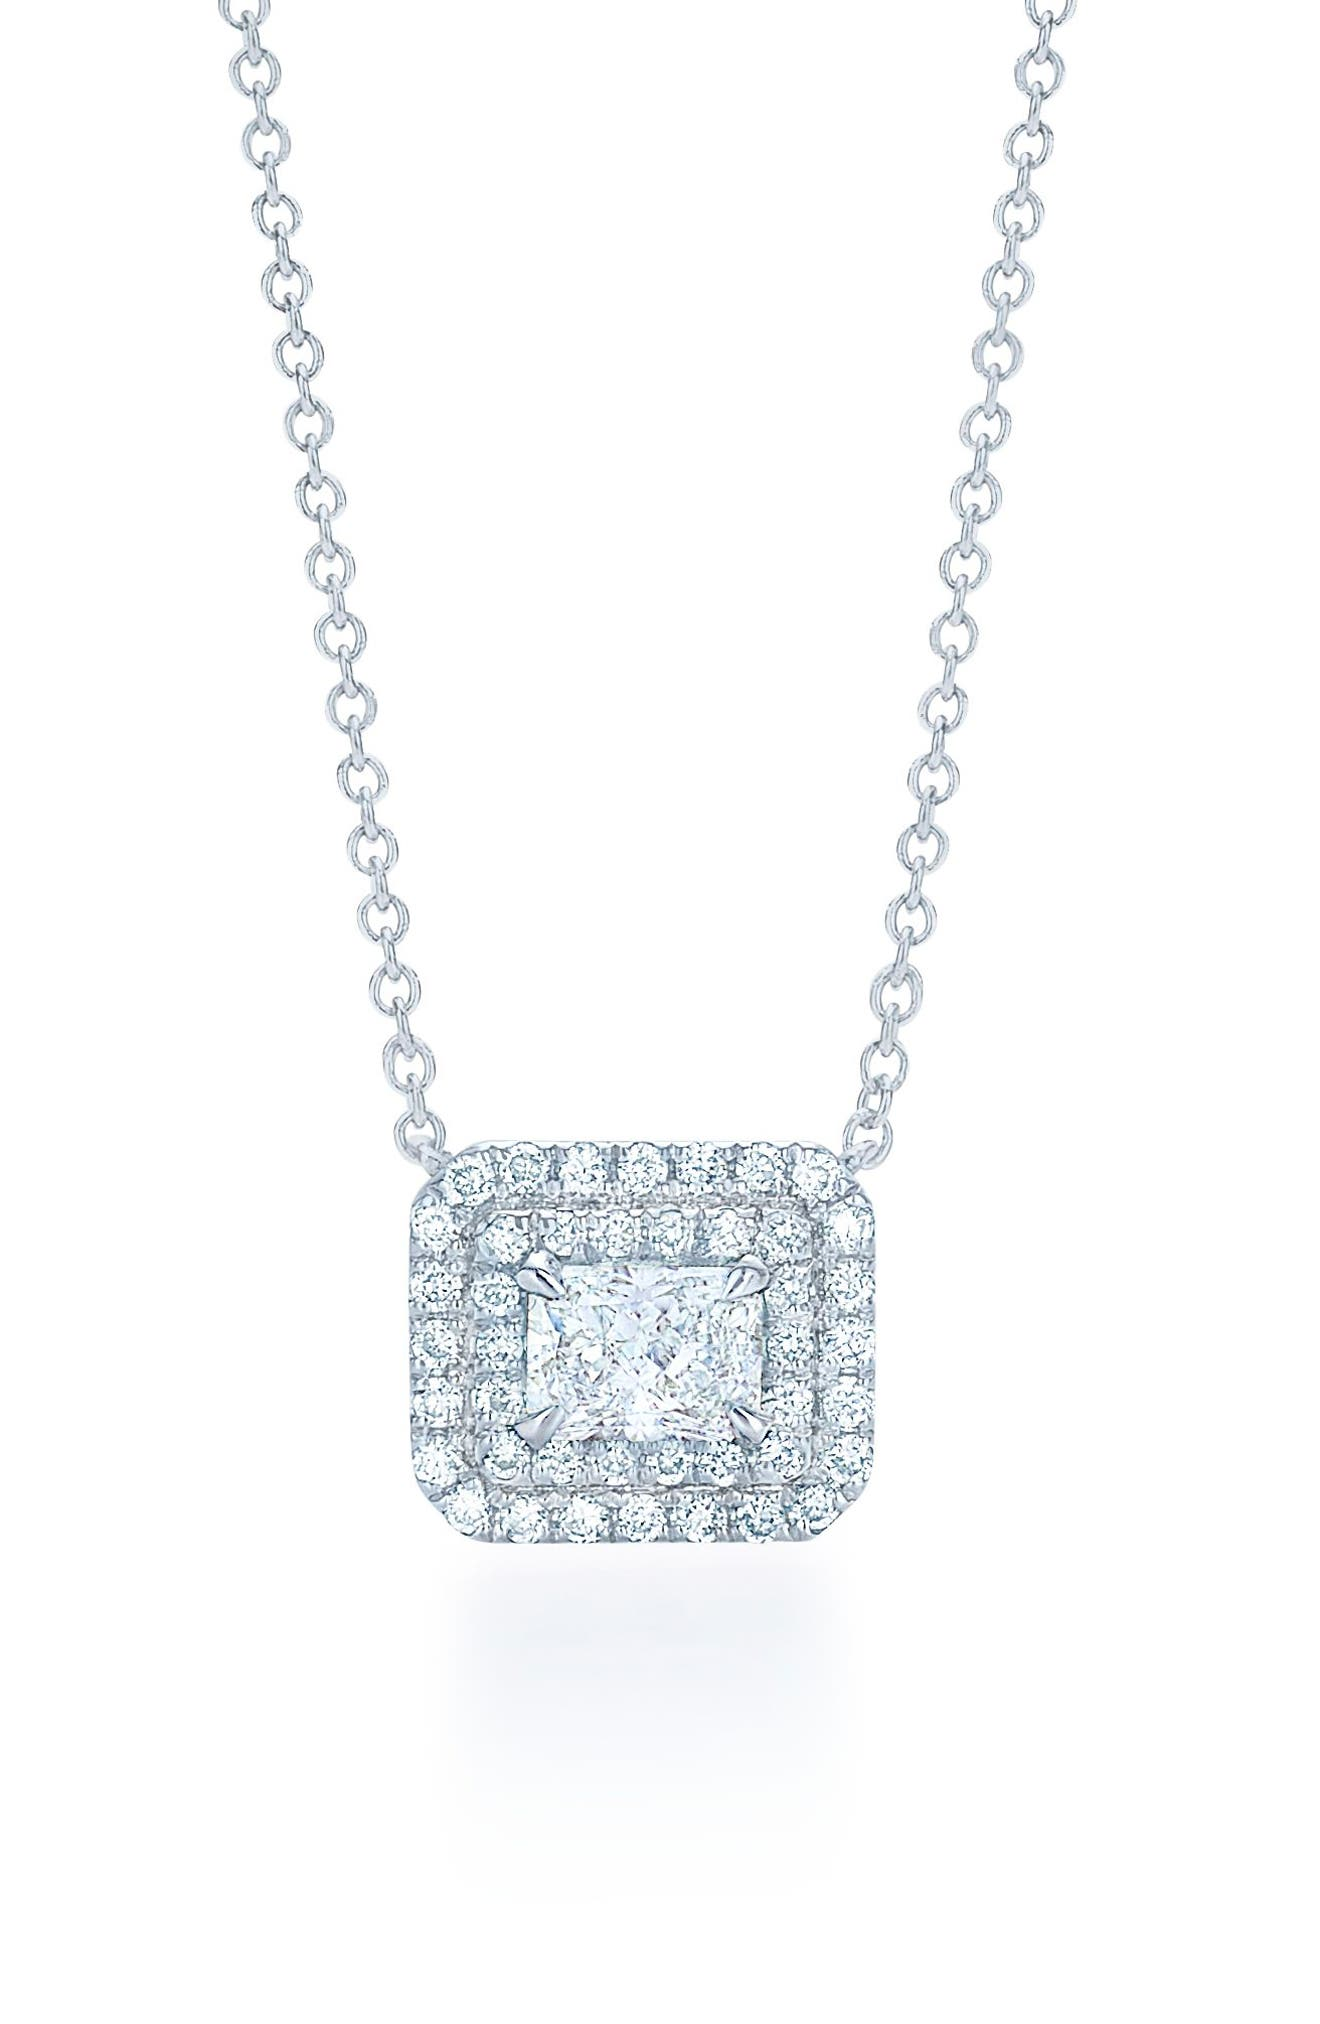 Radiant Cut Diamond Necklace,                             Main thumbnail 1, color,                             White Gold